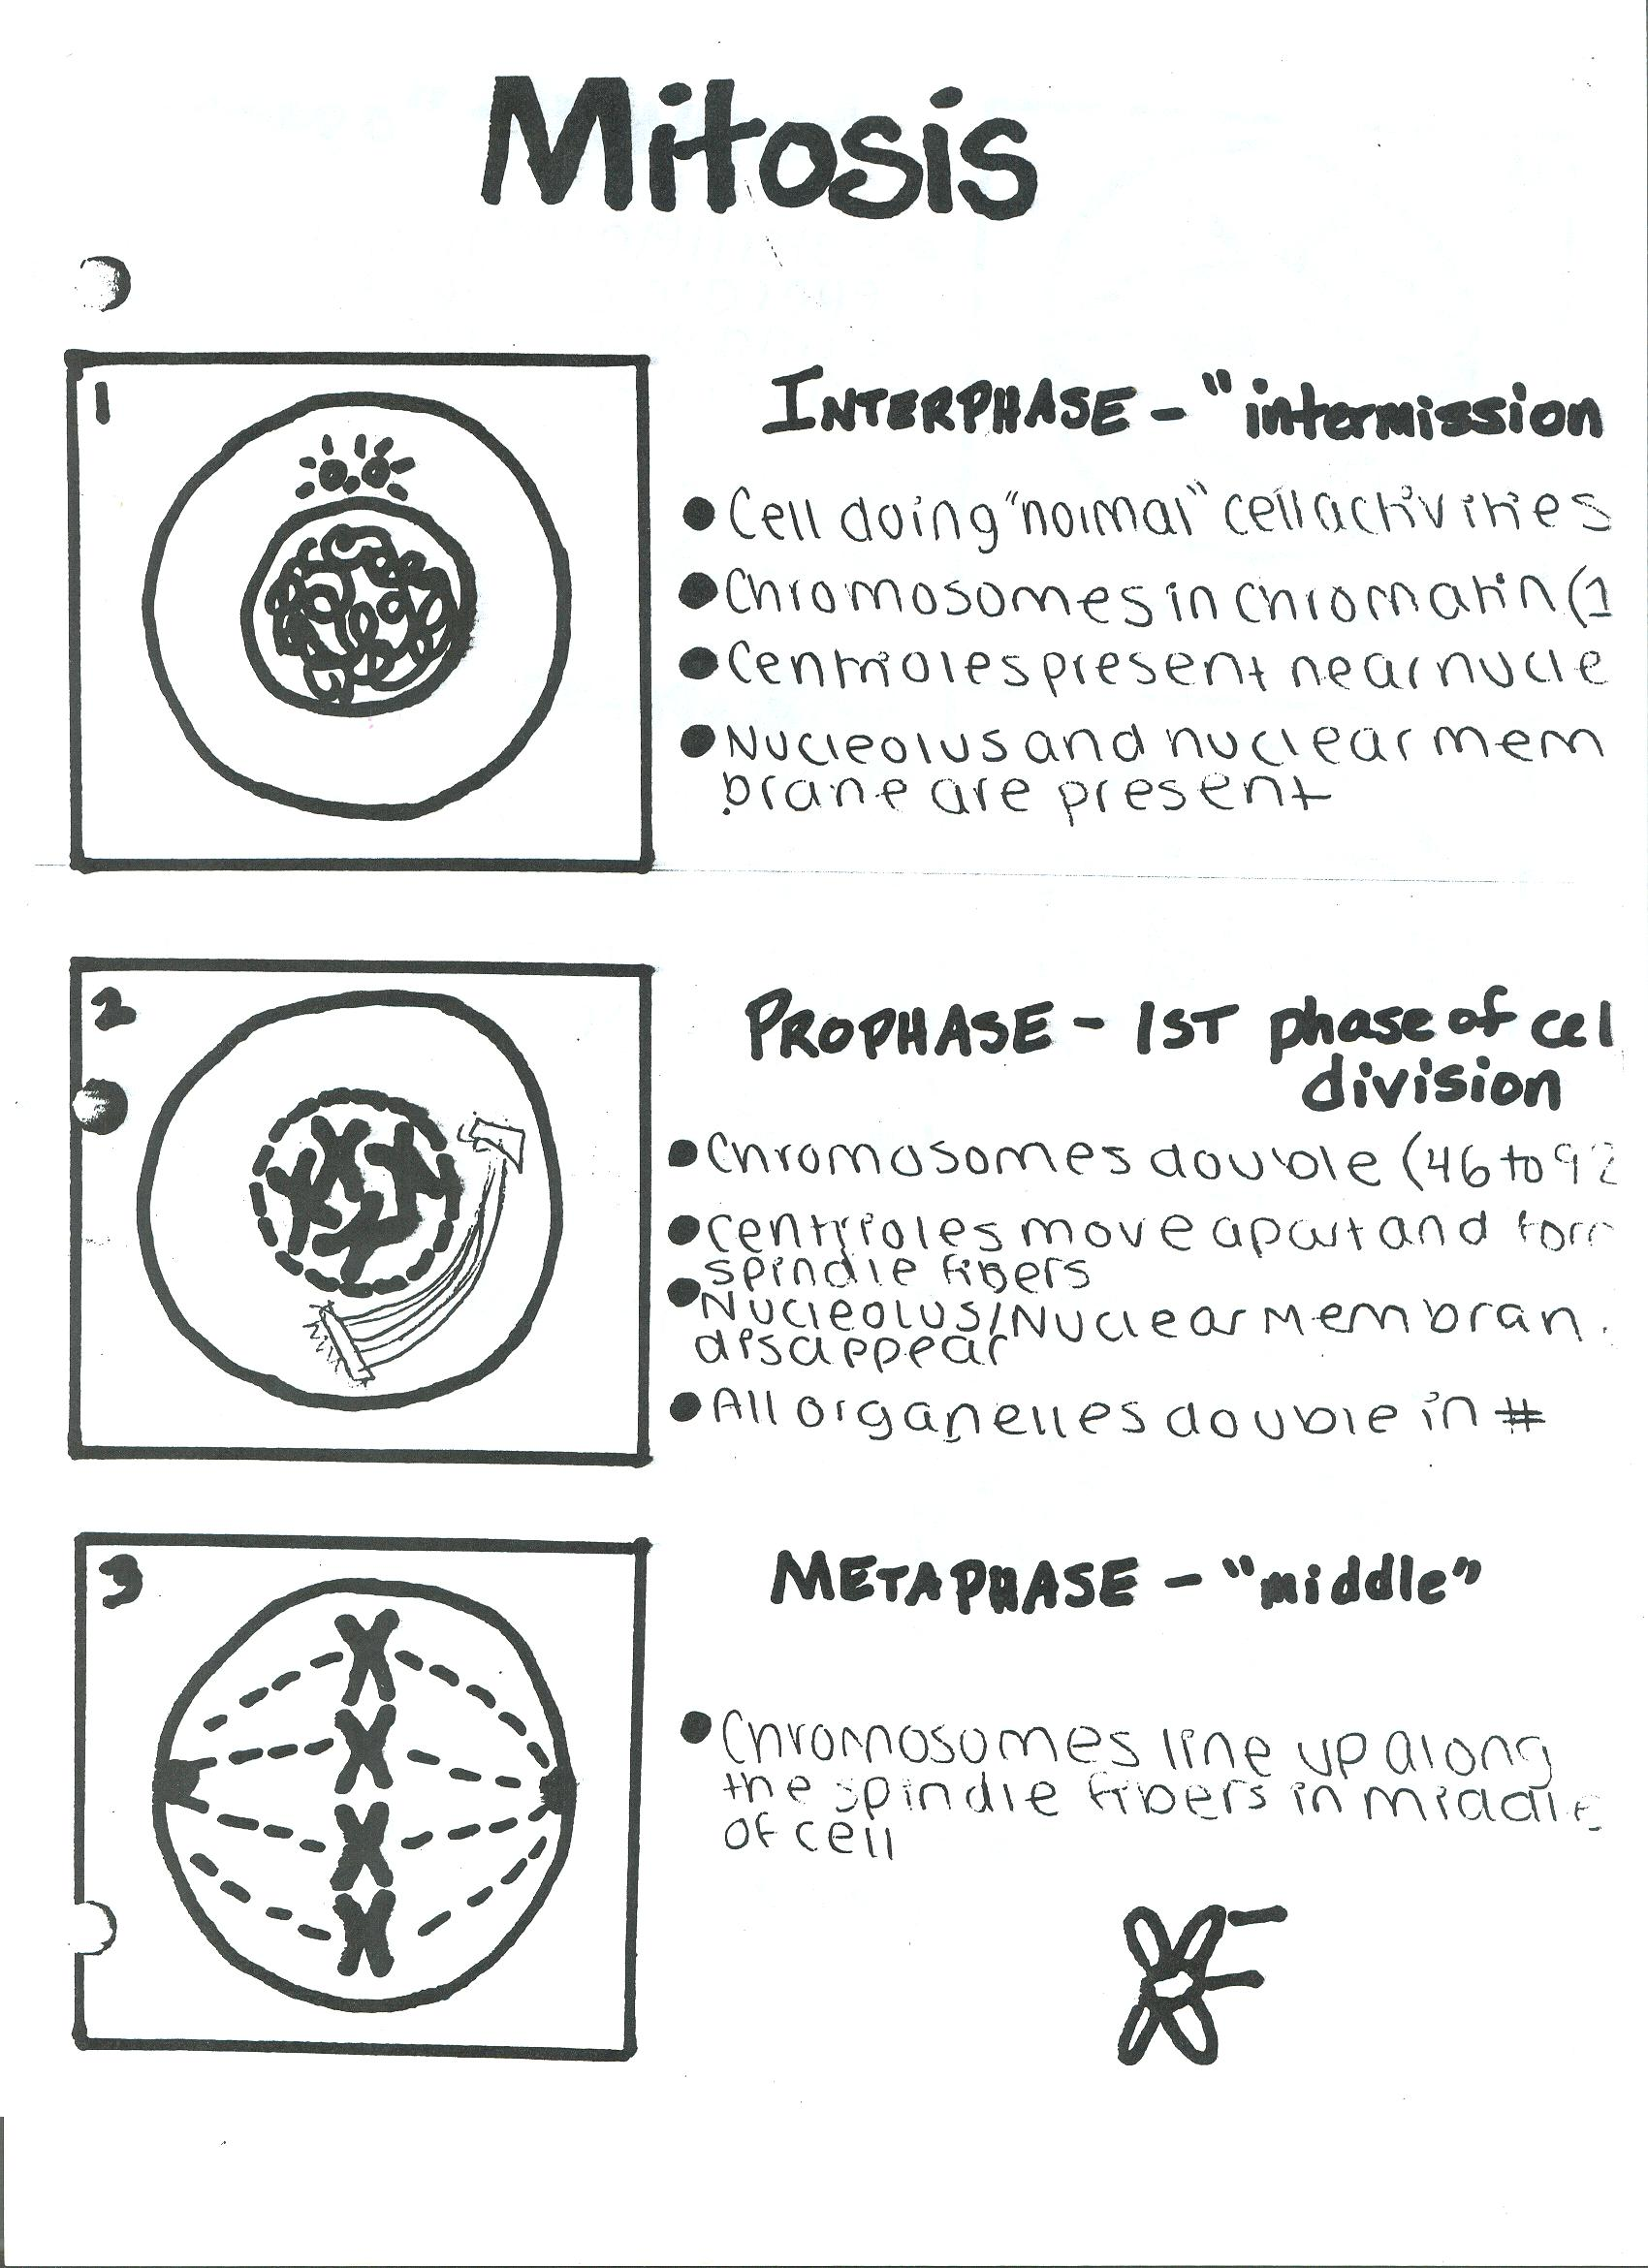 Meiosis vs Mitosis Diagram